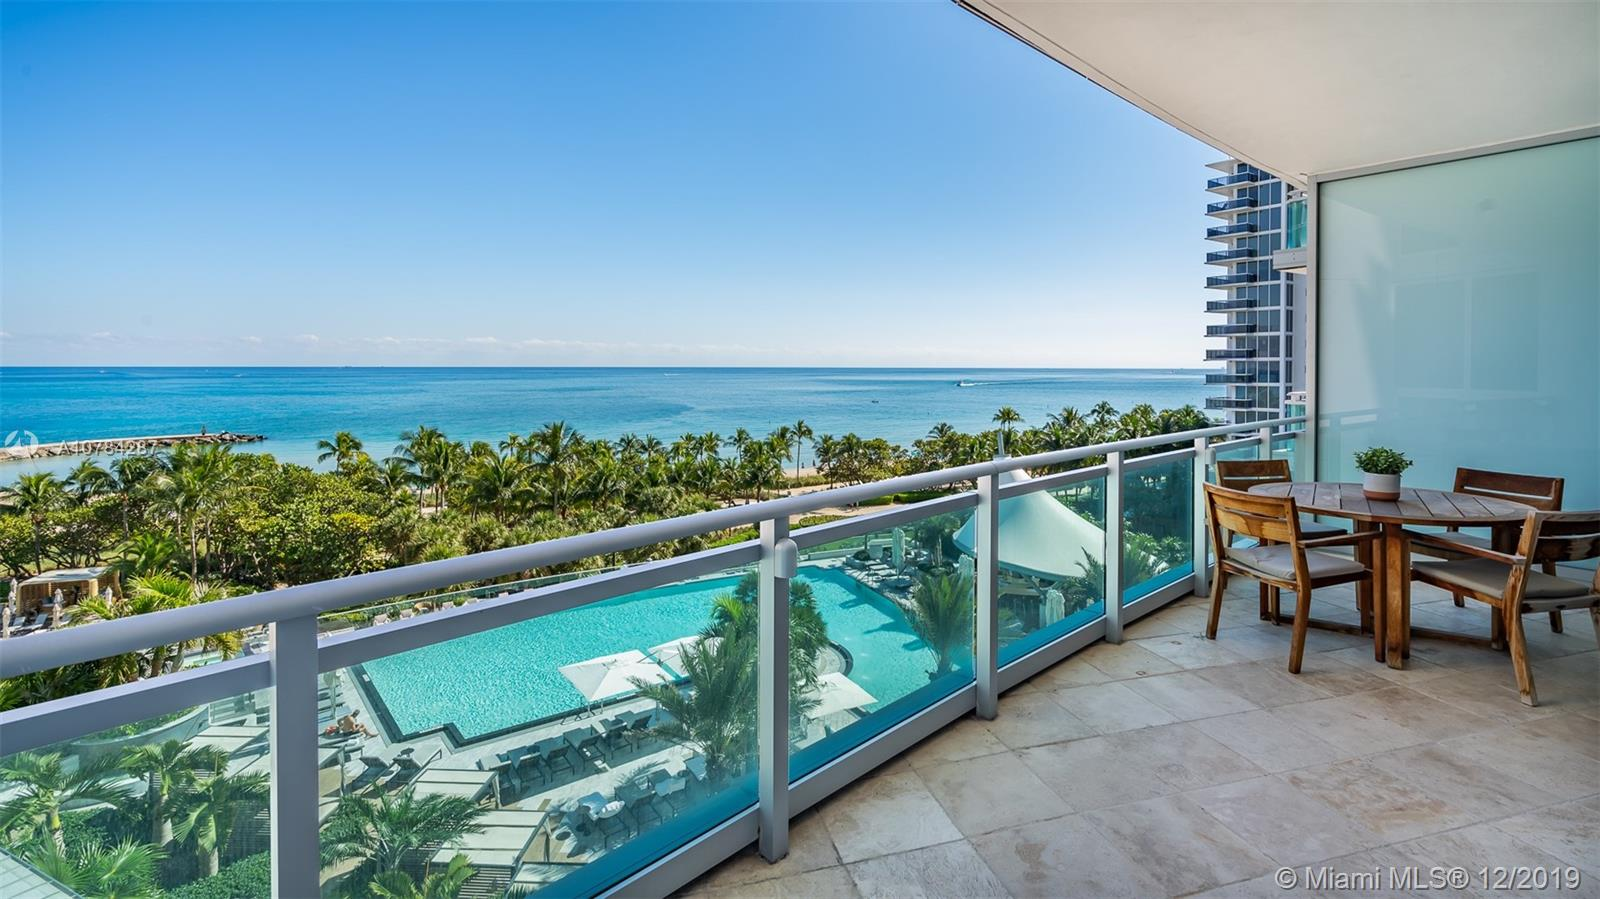 This elegant FURNISHED 3 bedrooms and 4 bathrooms flow through residence in prestigious ONE Bal Harbour features ocean & intracoastal views 3 spacious balconies. Private elevator takes you directly from your garage to your residence foyer which opens into a grand open living room with dining room combined. Designed with impeccable taste and styleunit features marble floors throughout living area and wood floor in bedrooms. A Full Service Luxury Building offering opulent Ritz-Carlton World Class 5 Star Services & Amenities. Sate of the art gym, 2 swimming pools, beach and pool service, 24 hrs concierge, room service, theater, valet and more. Walking distance to One Bal Harbor Shops and Surfside.15 min drive to Aventura Mall and South Beach. View virtual tour